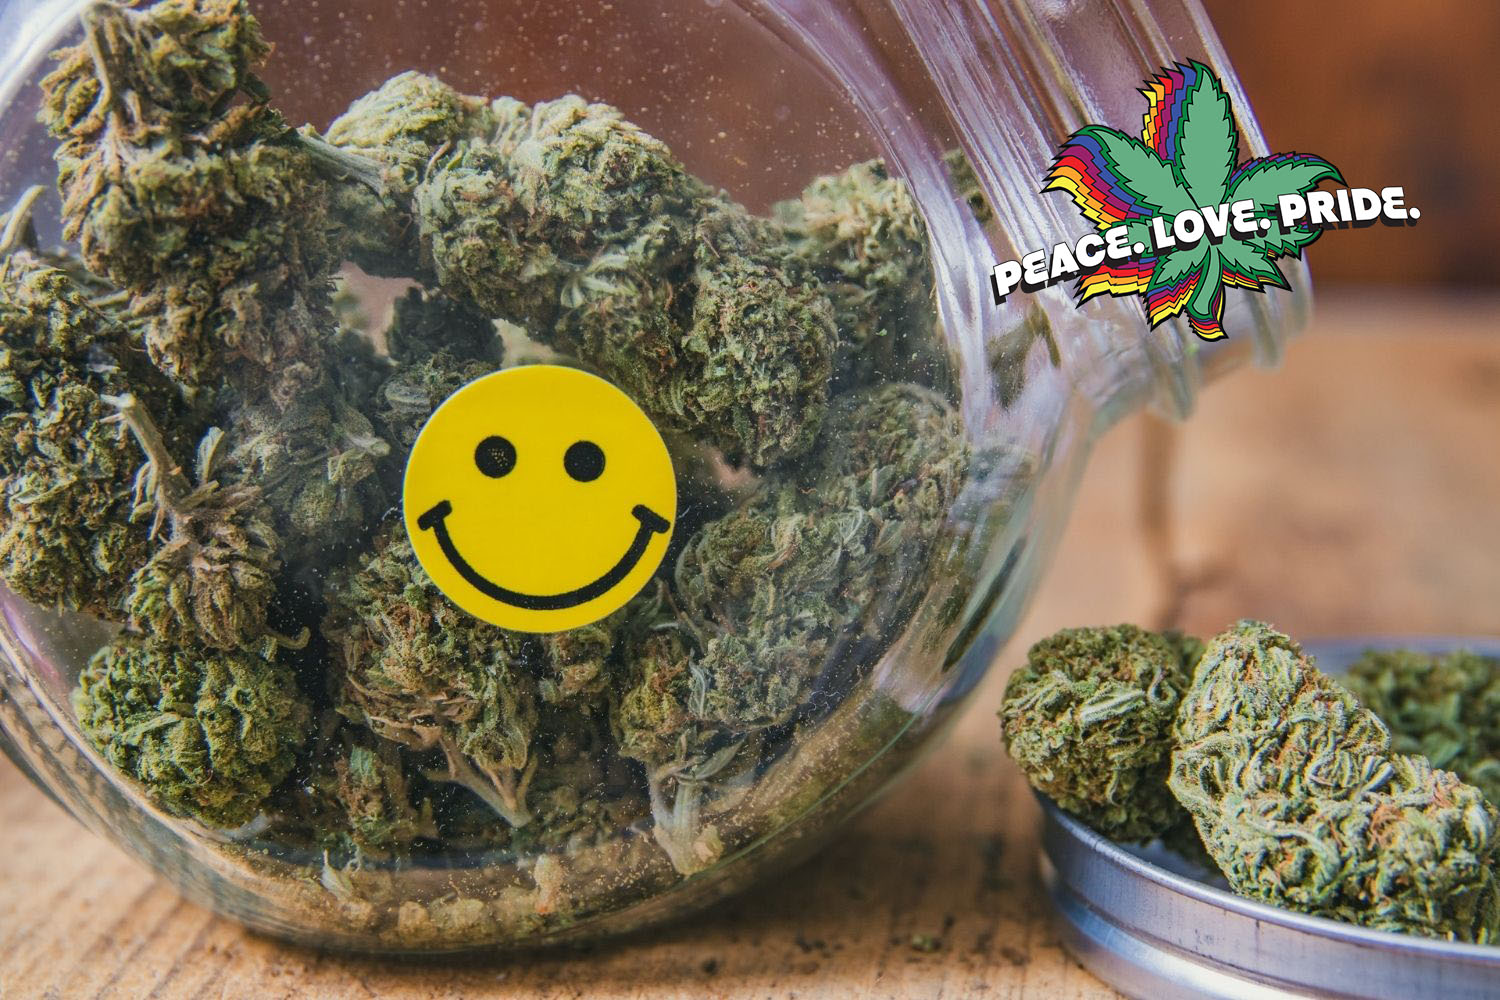 Jar of cannabis with happy face sticker